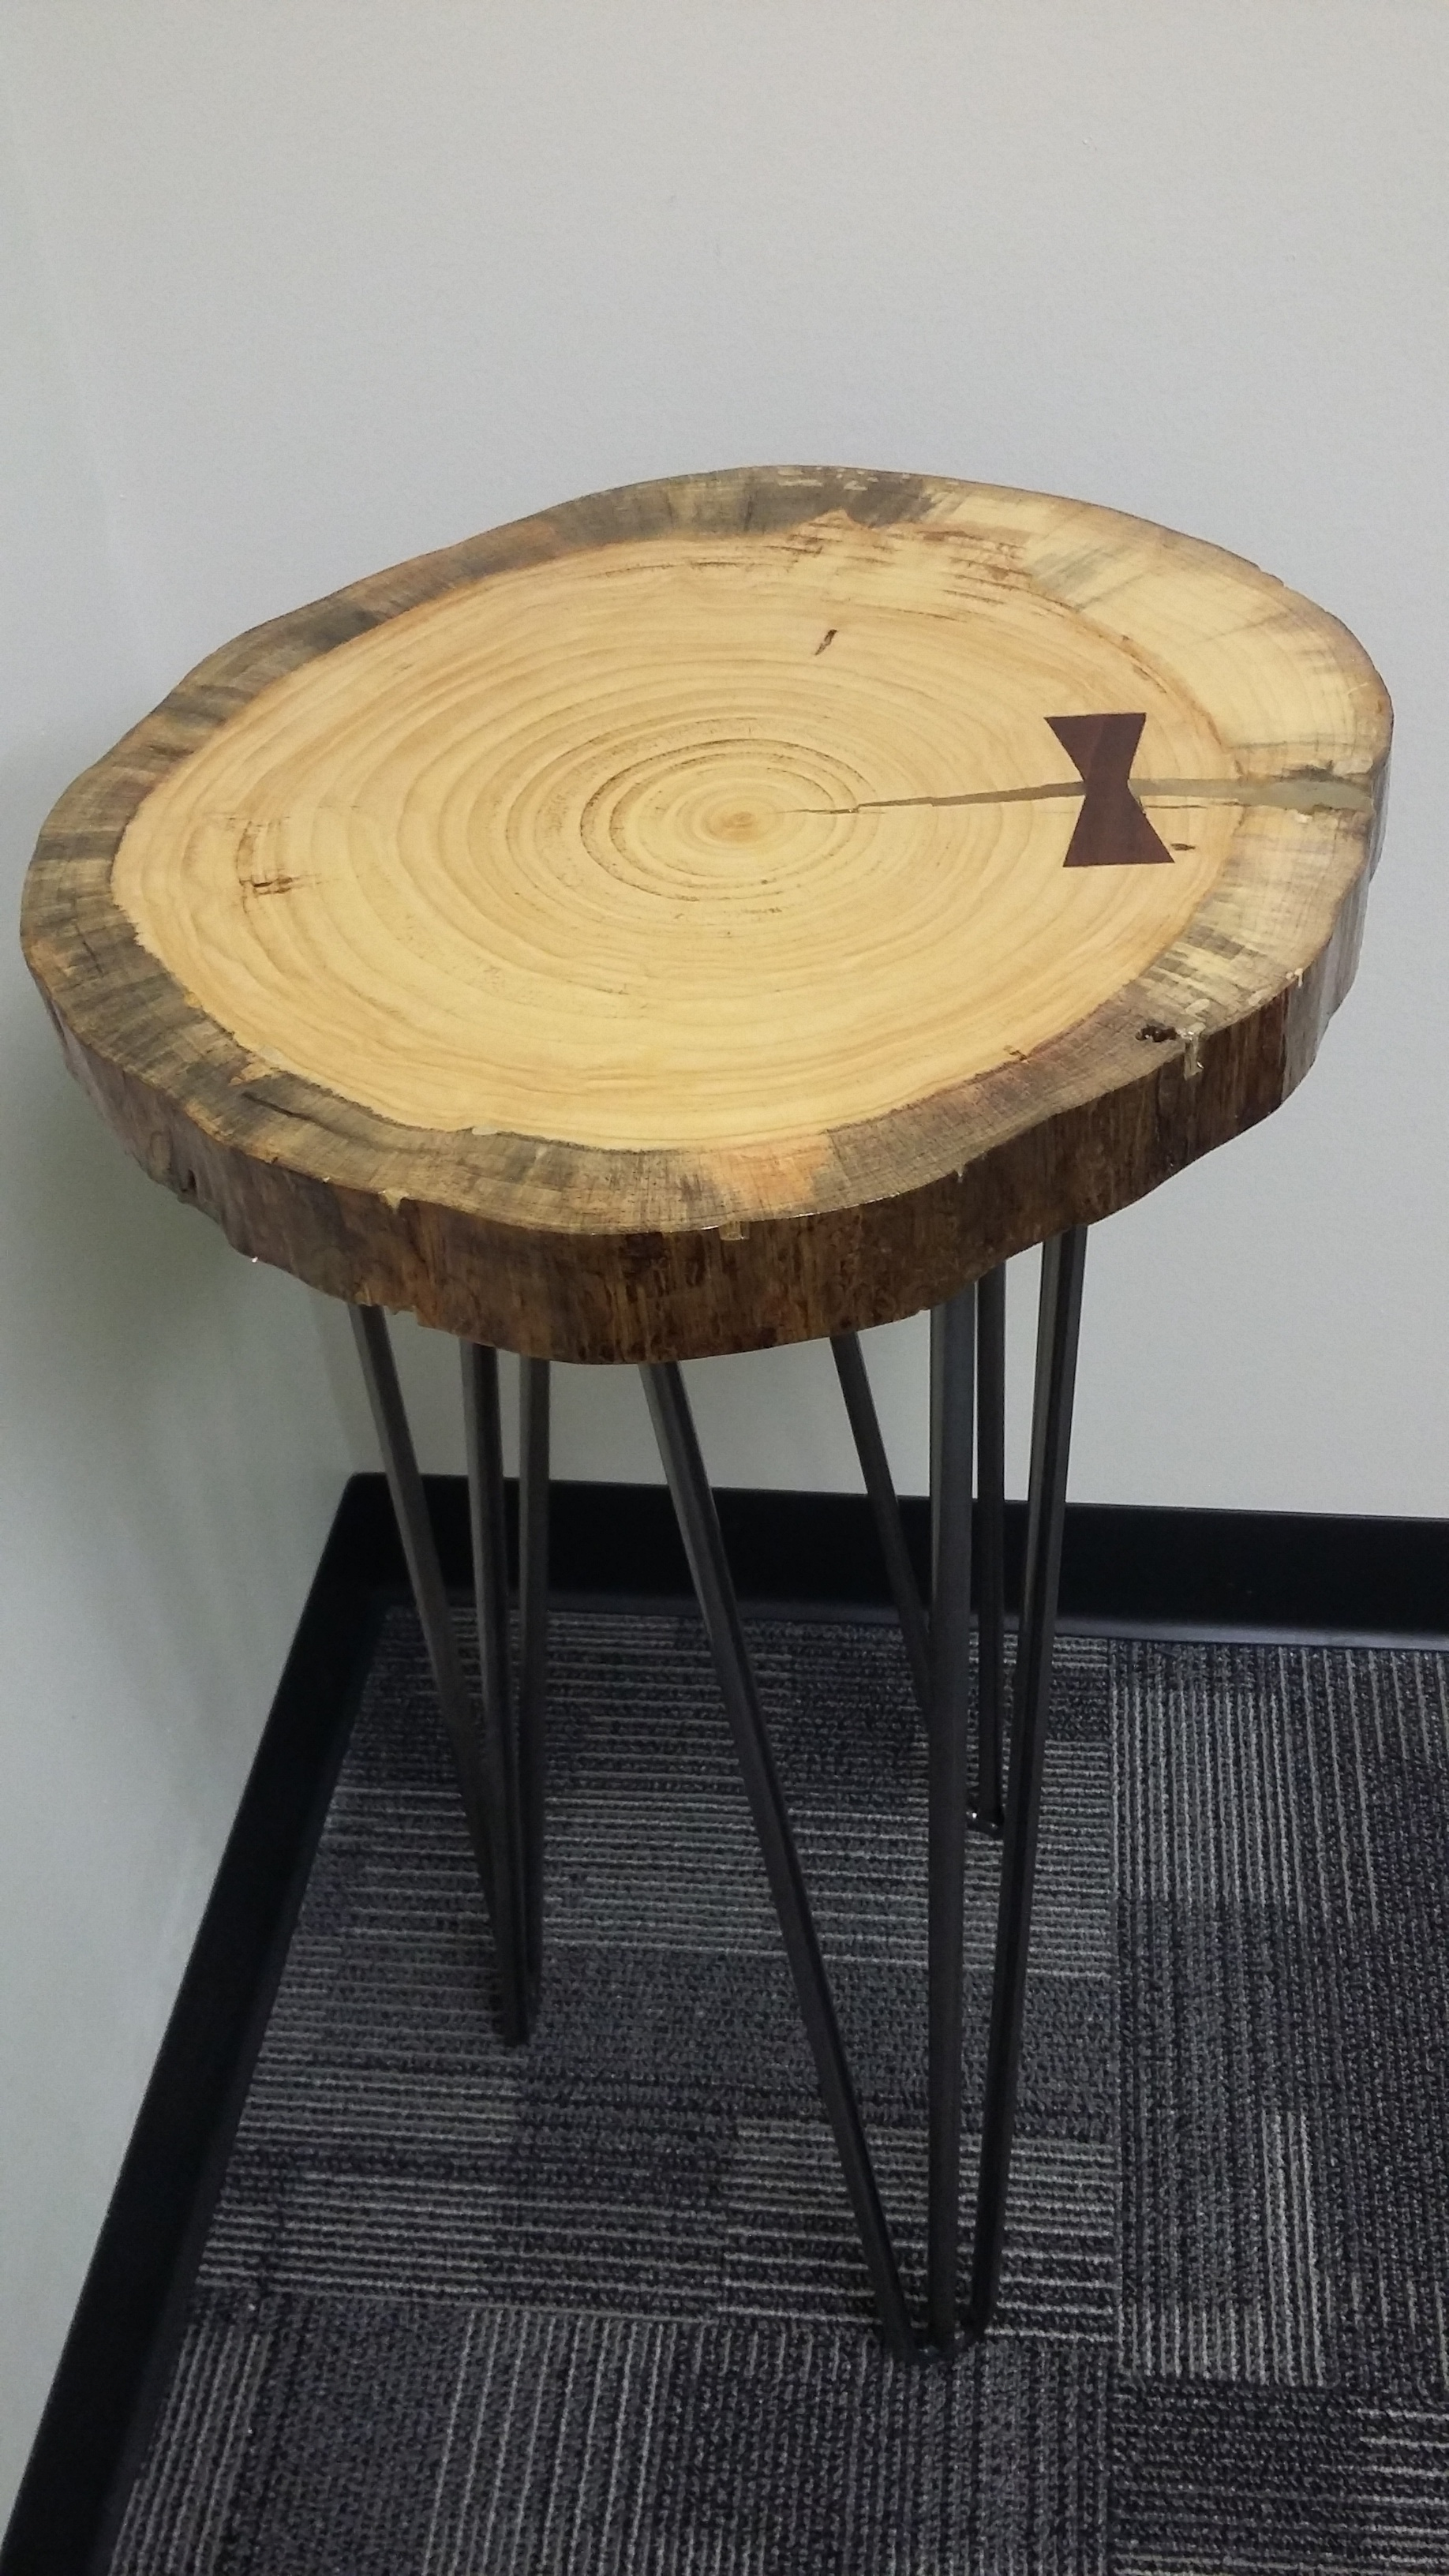 In memory of our Angel Natalie Marcella Wiegman  - Handmade - Table - by Ed Wiegman